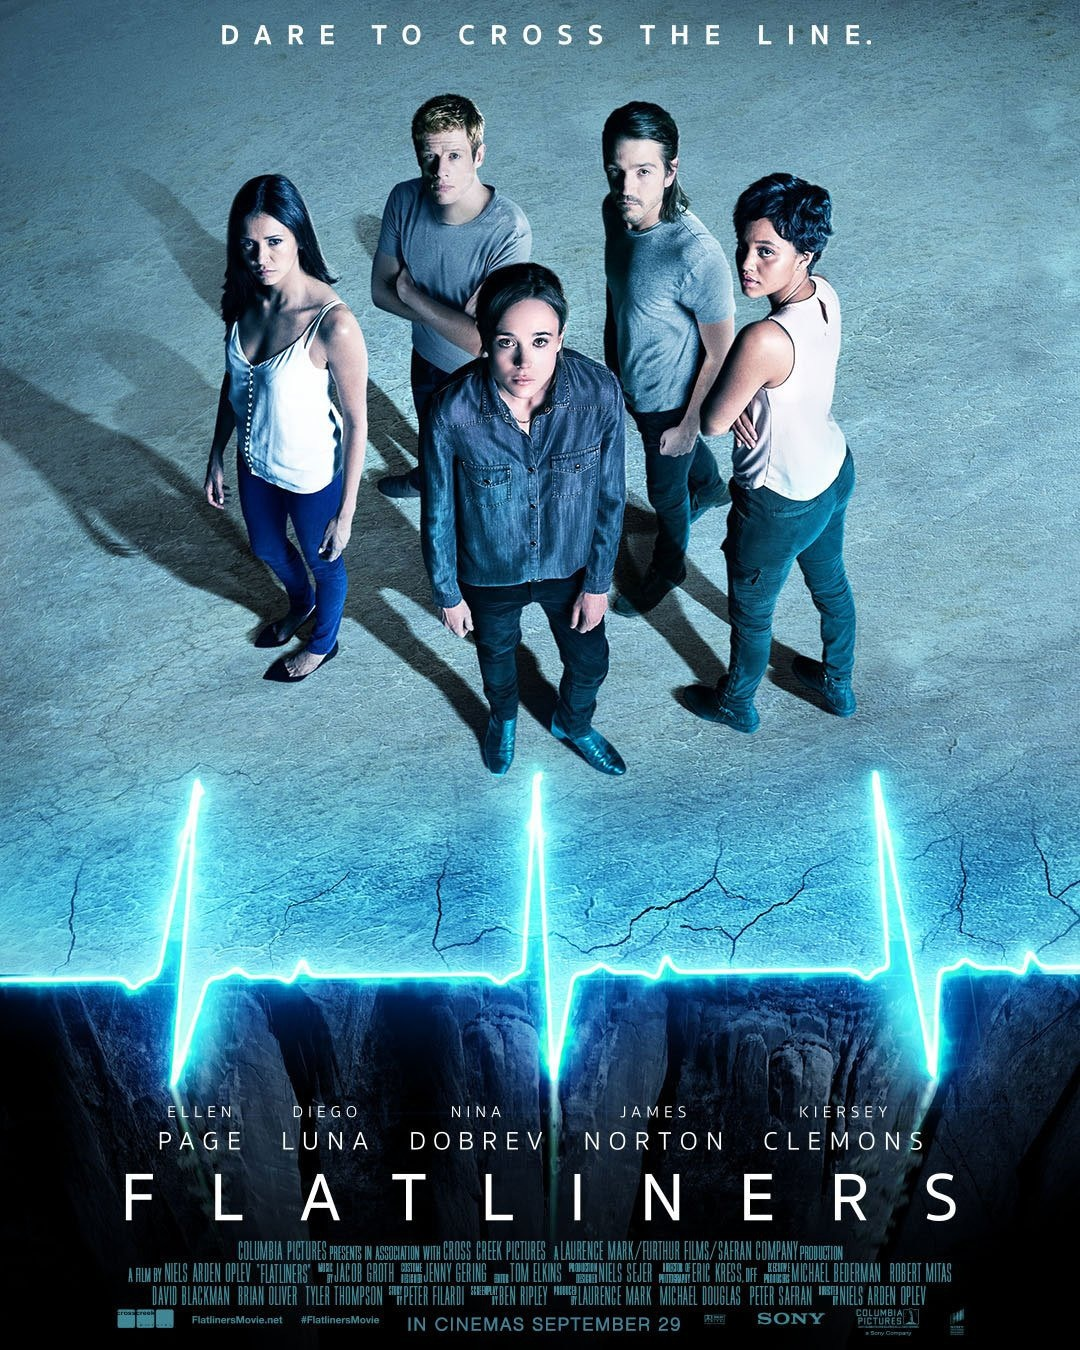 Flatliners poster 1 - Flatliners - A Pair of Posters to Keep Your Heart Beating